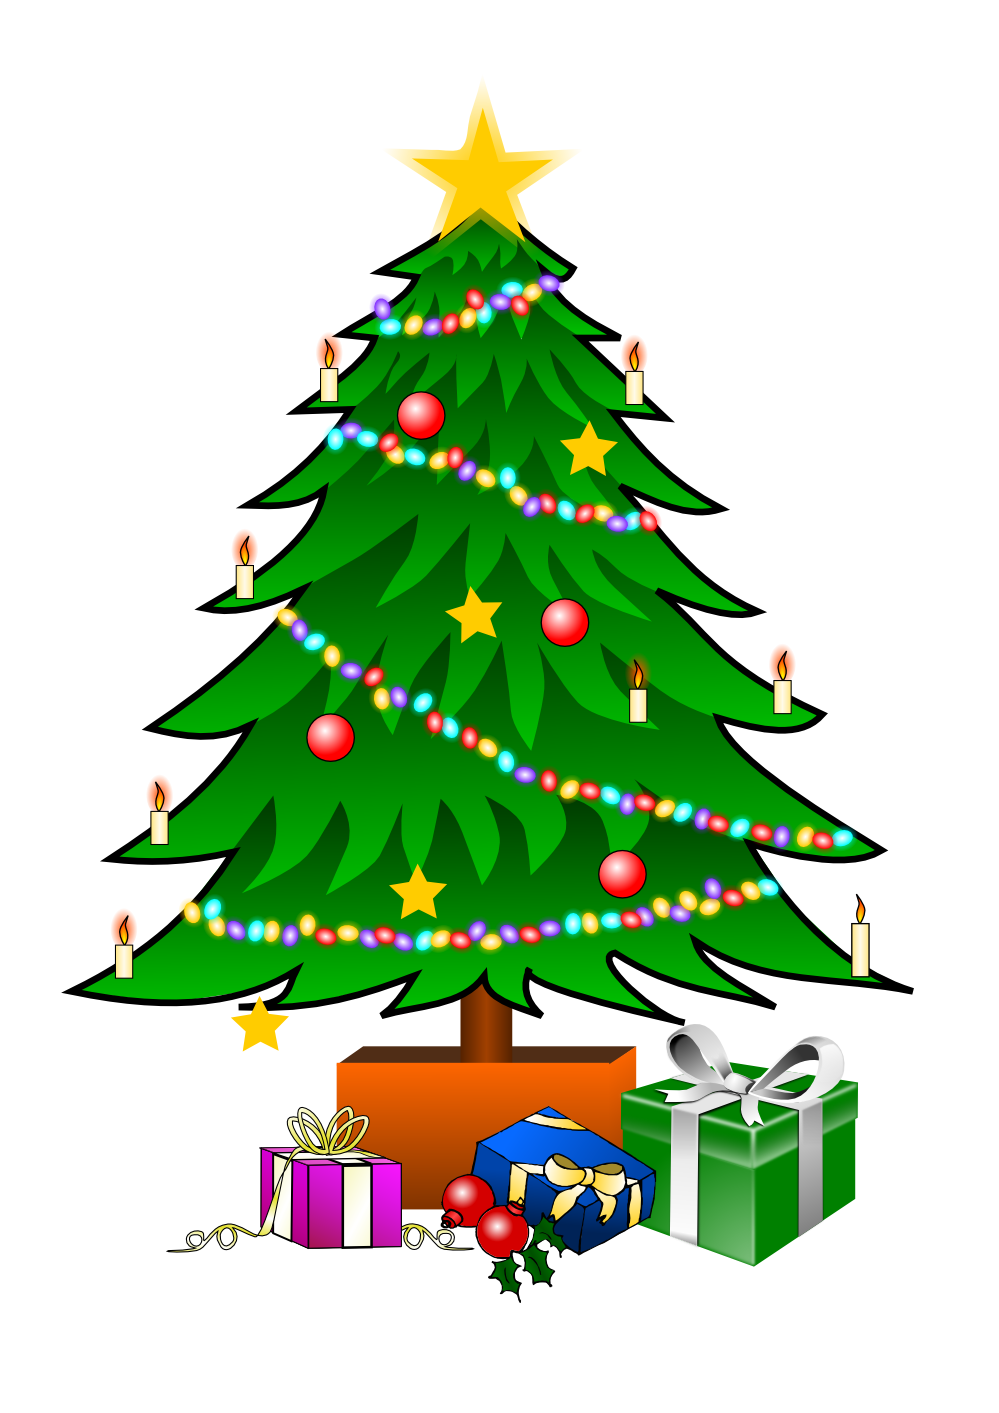 Merry clipart of xmas. Toys vector christmas tree graphic free